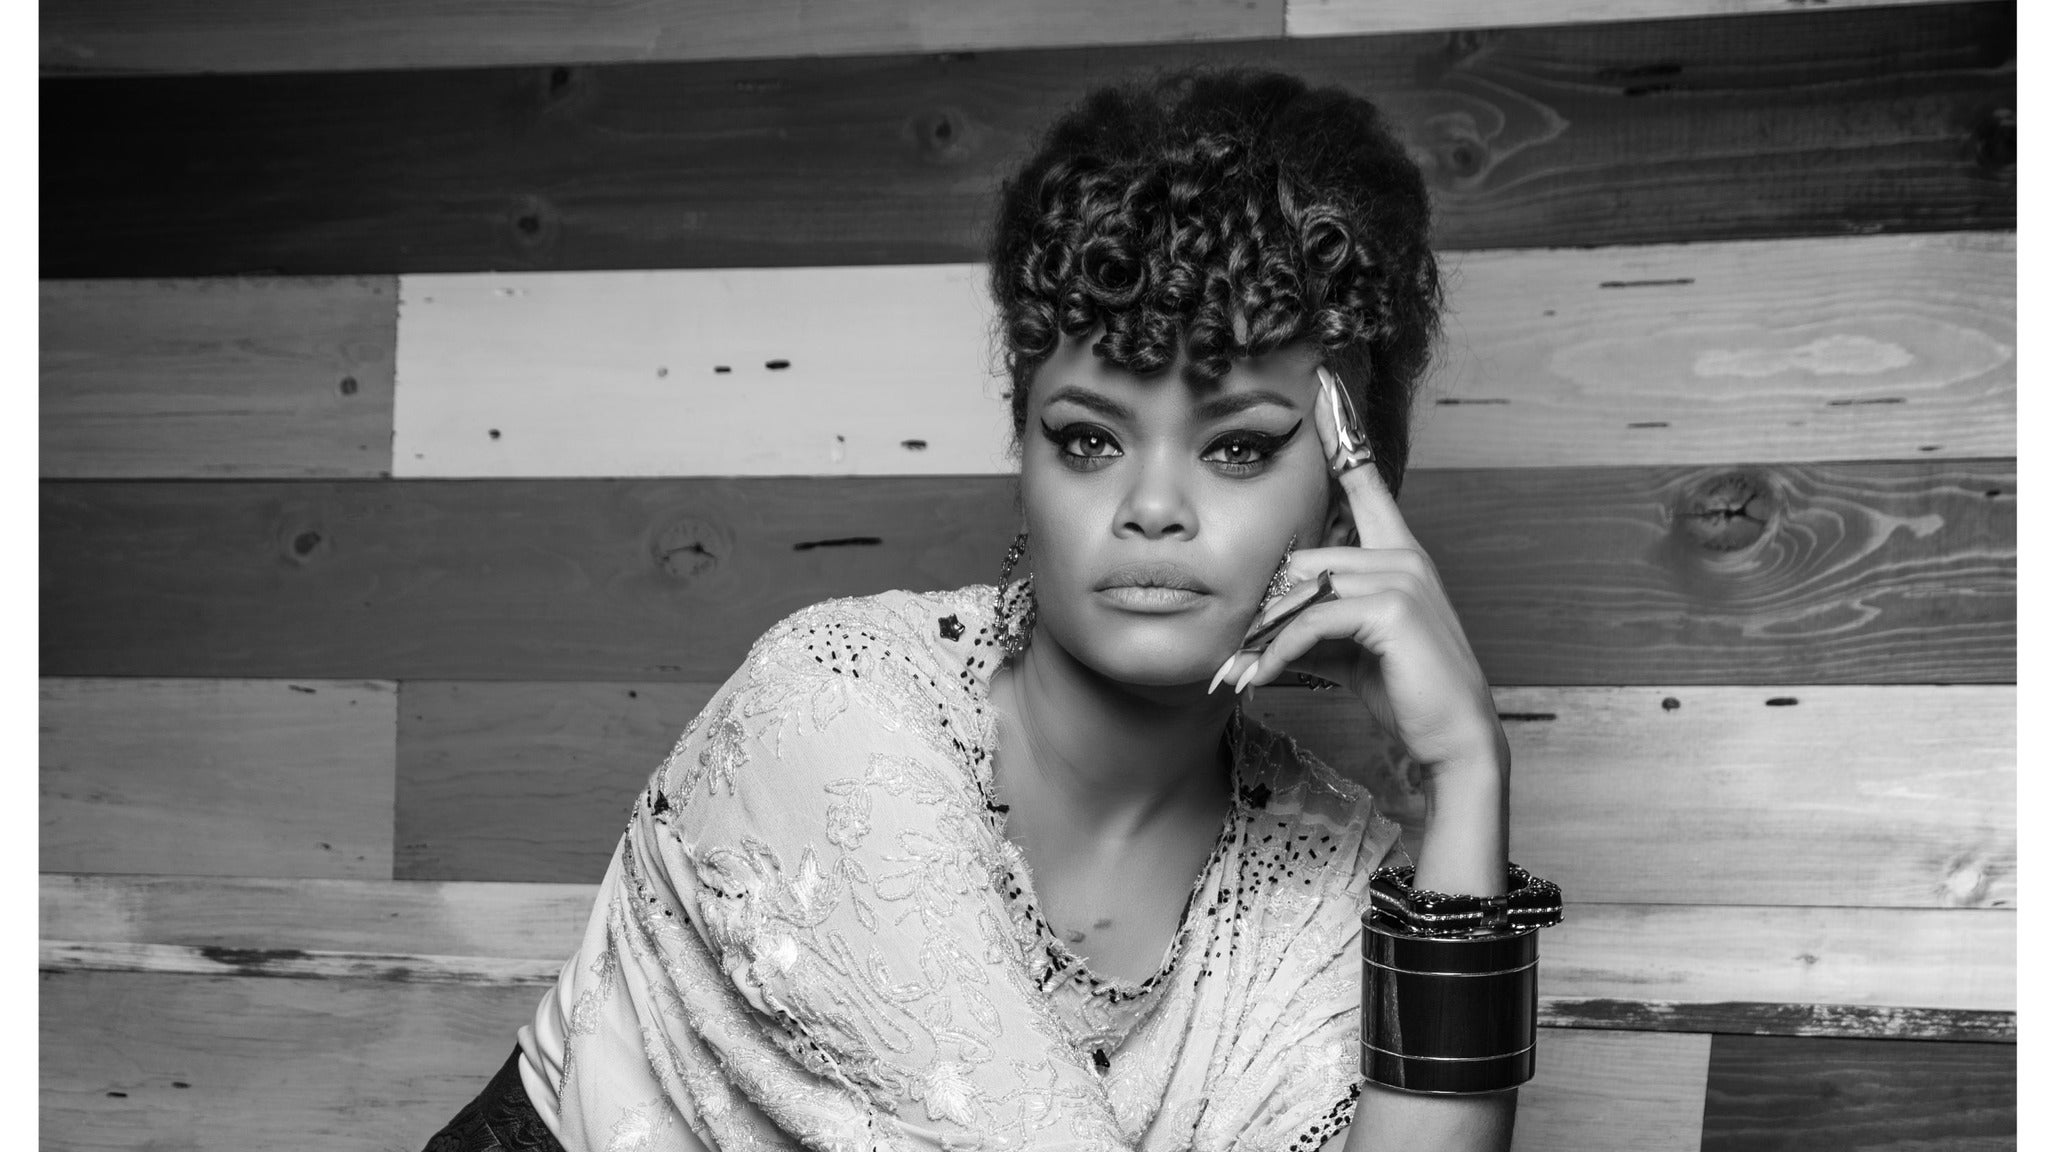 SORRY, THIS EVENT IS NO LONGER ACTIVE<br>Andra Day at The Tabernacle - Atlanta, GA 30303